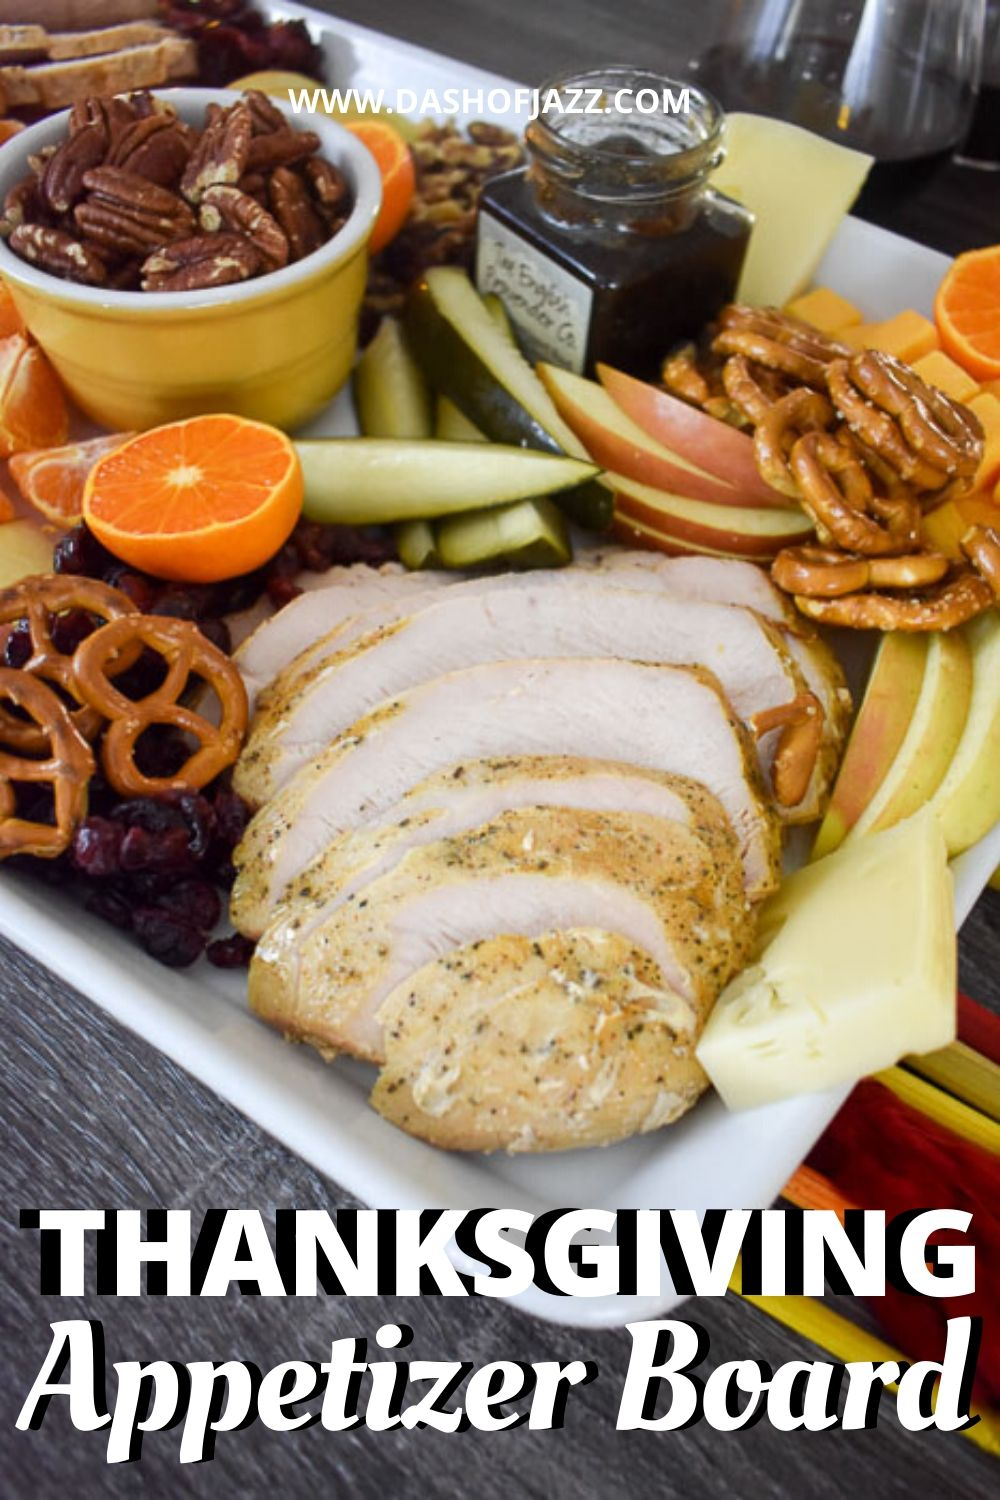 photo of sliced turkey on Thanksgiving appetizer board with text overlay